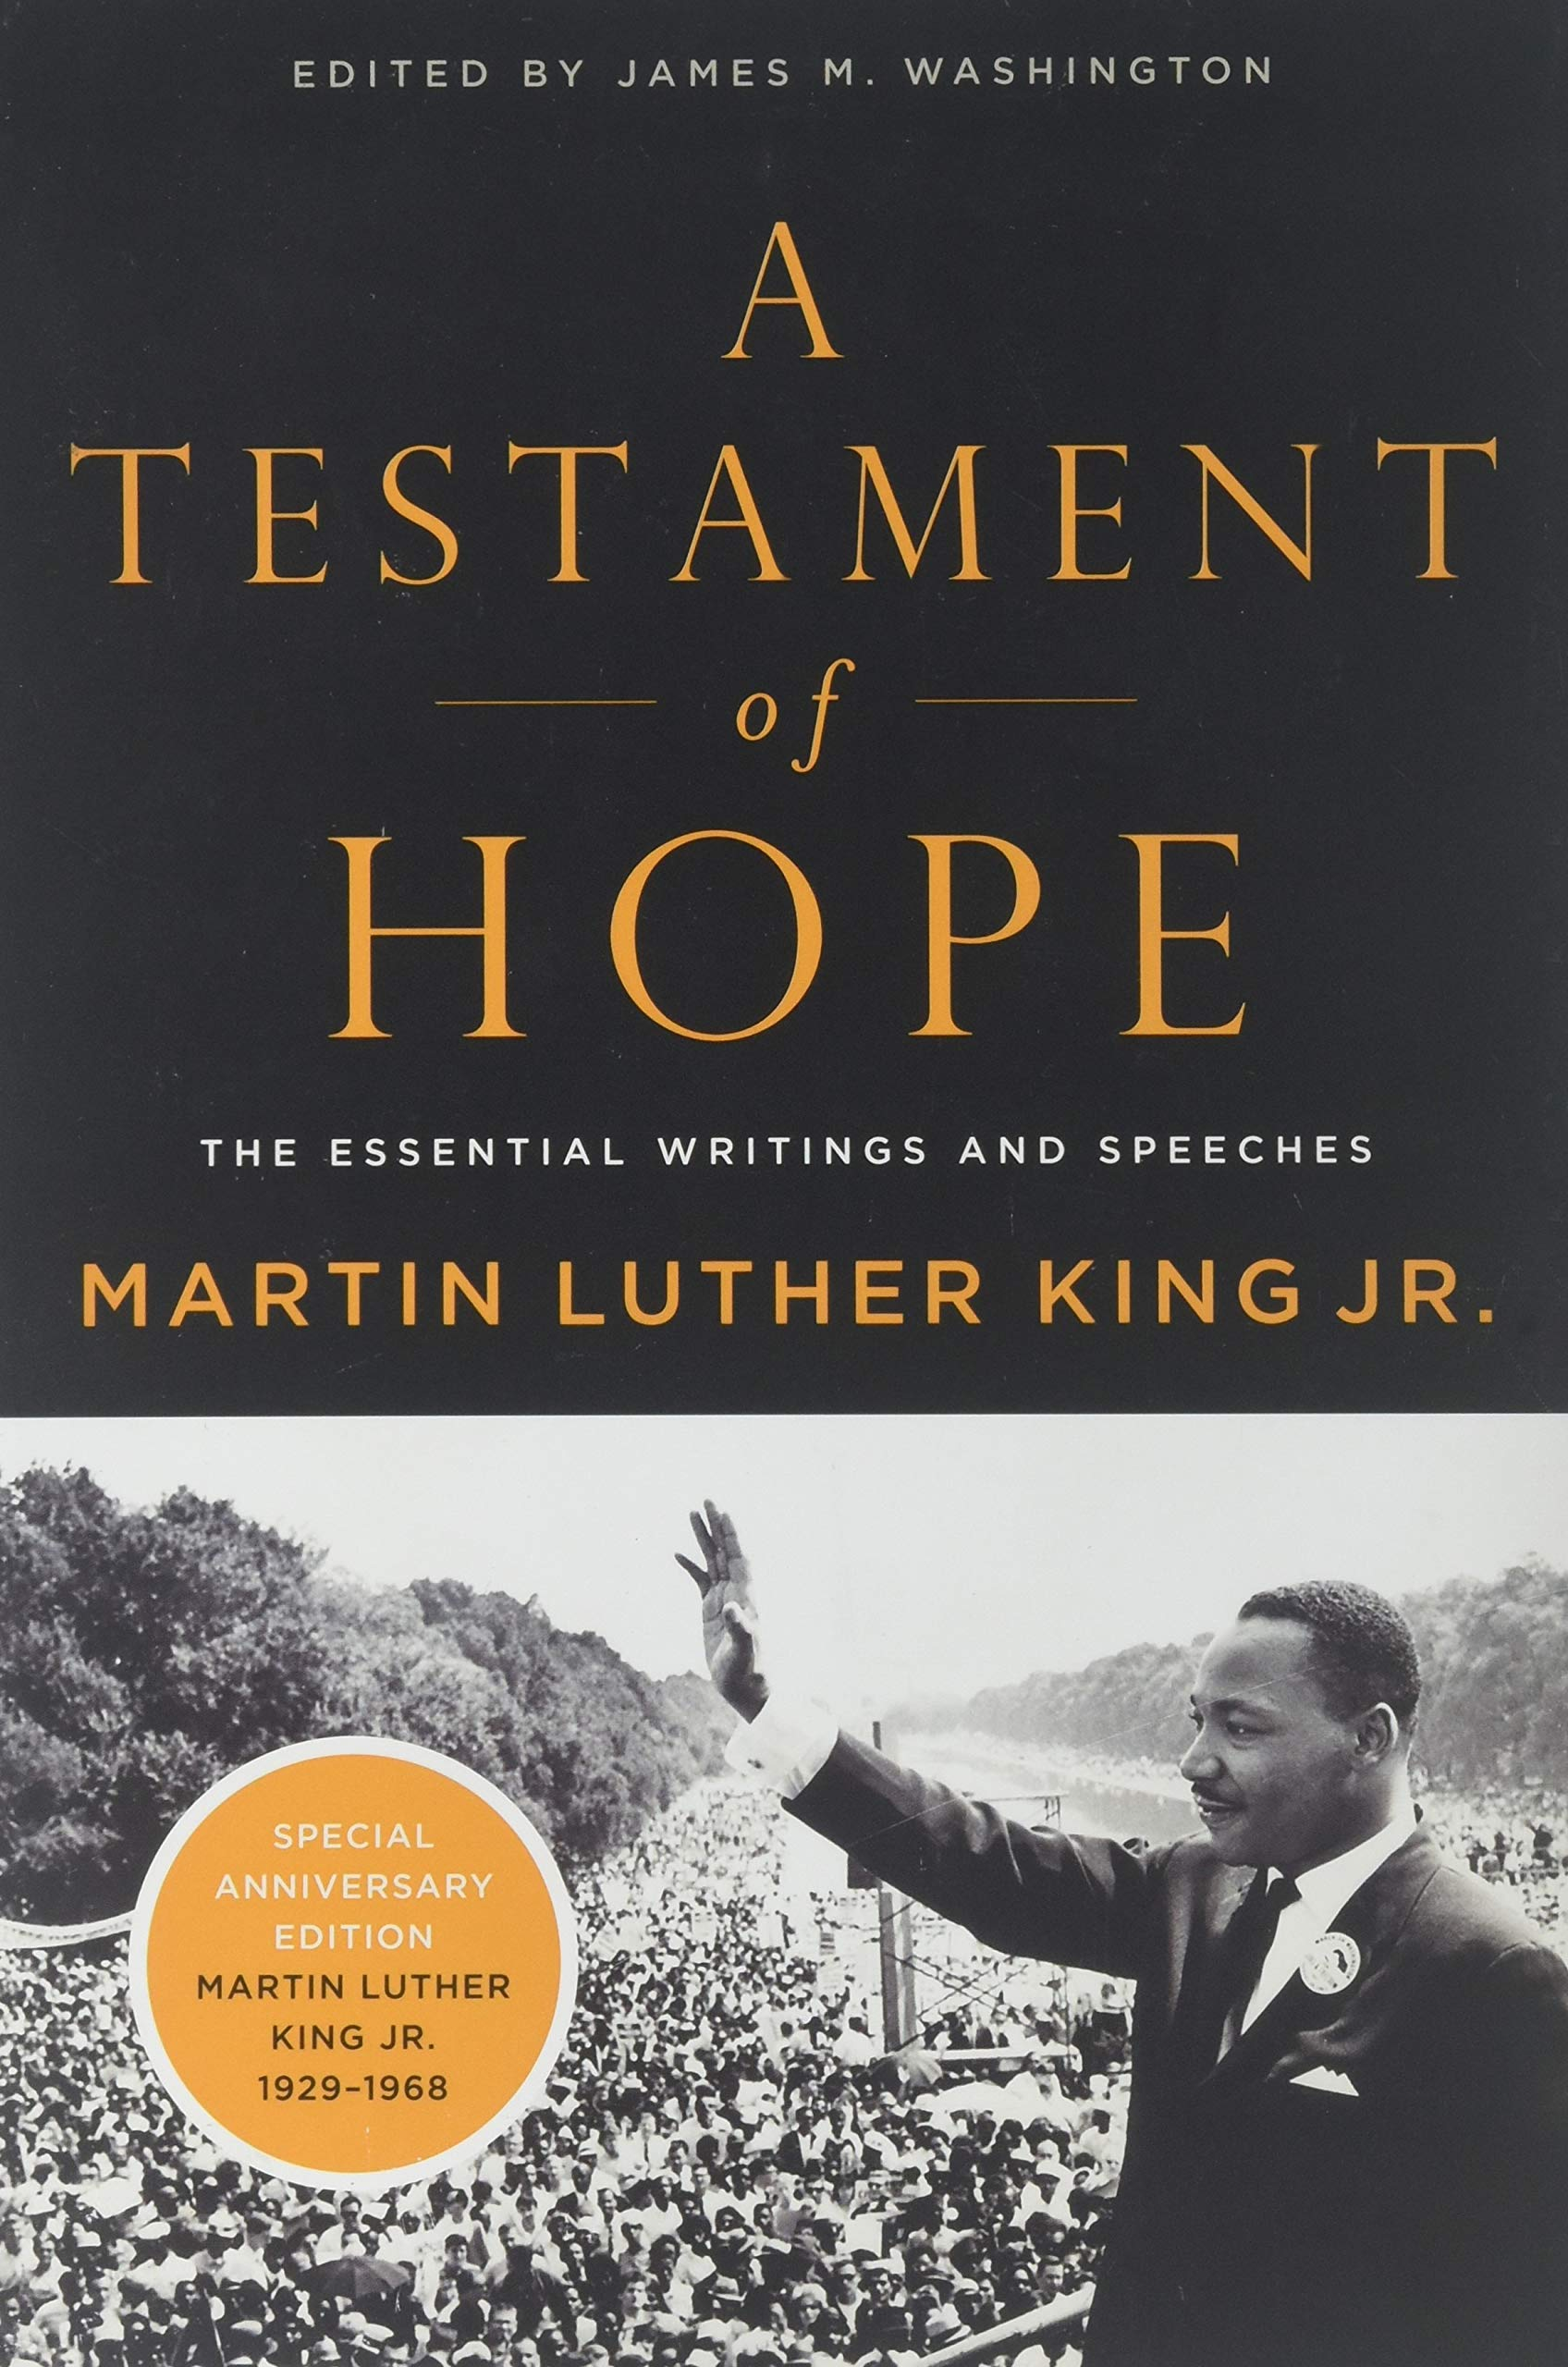 A Testament of Hope: The Essential Writings and Speeches